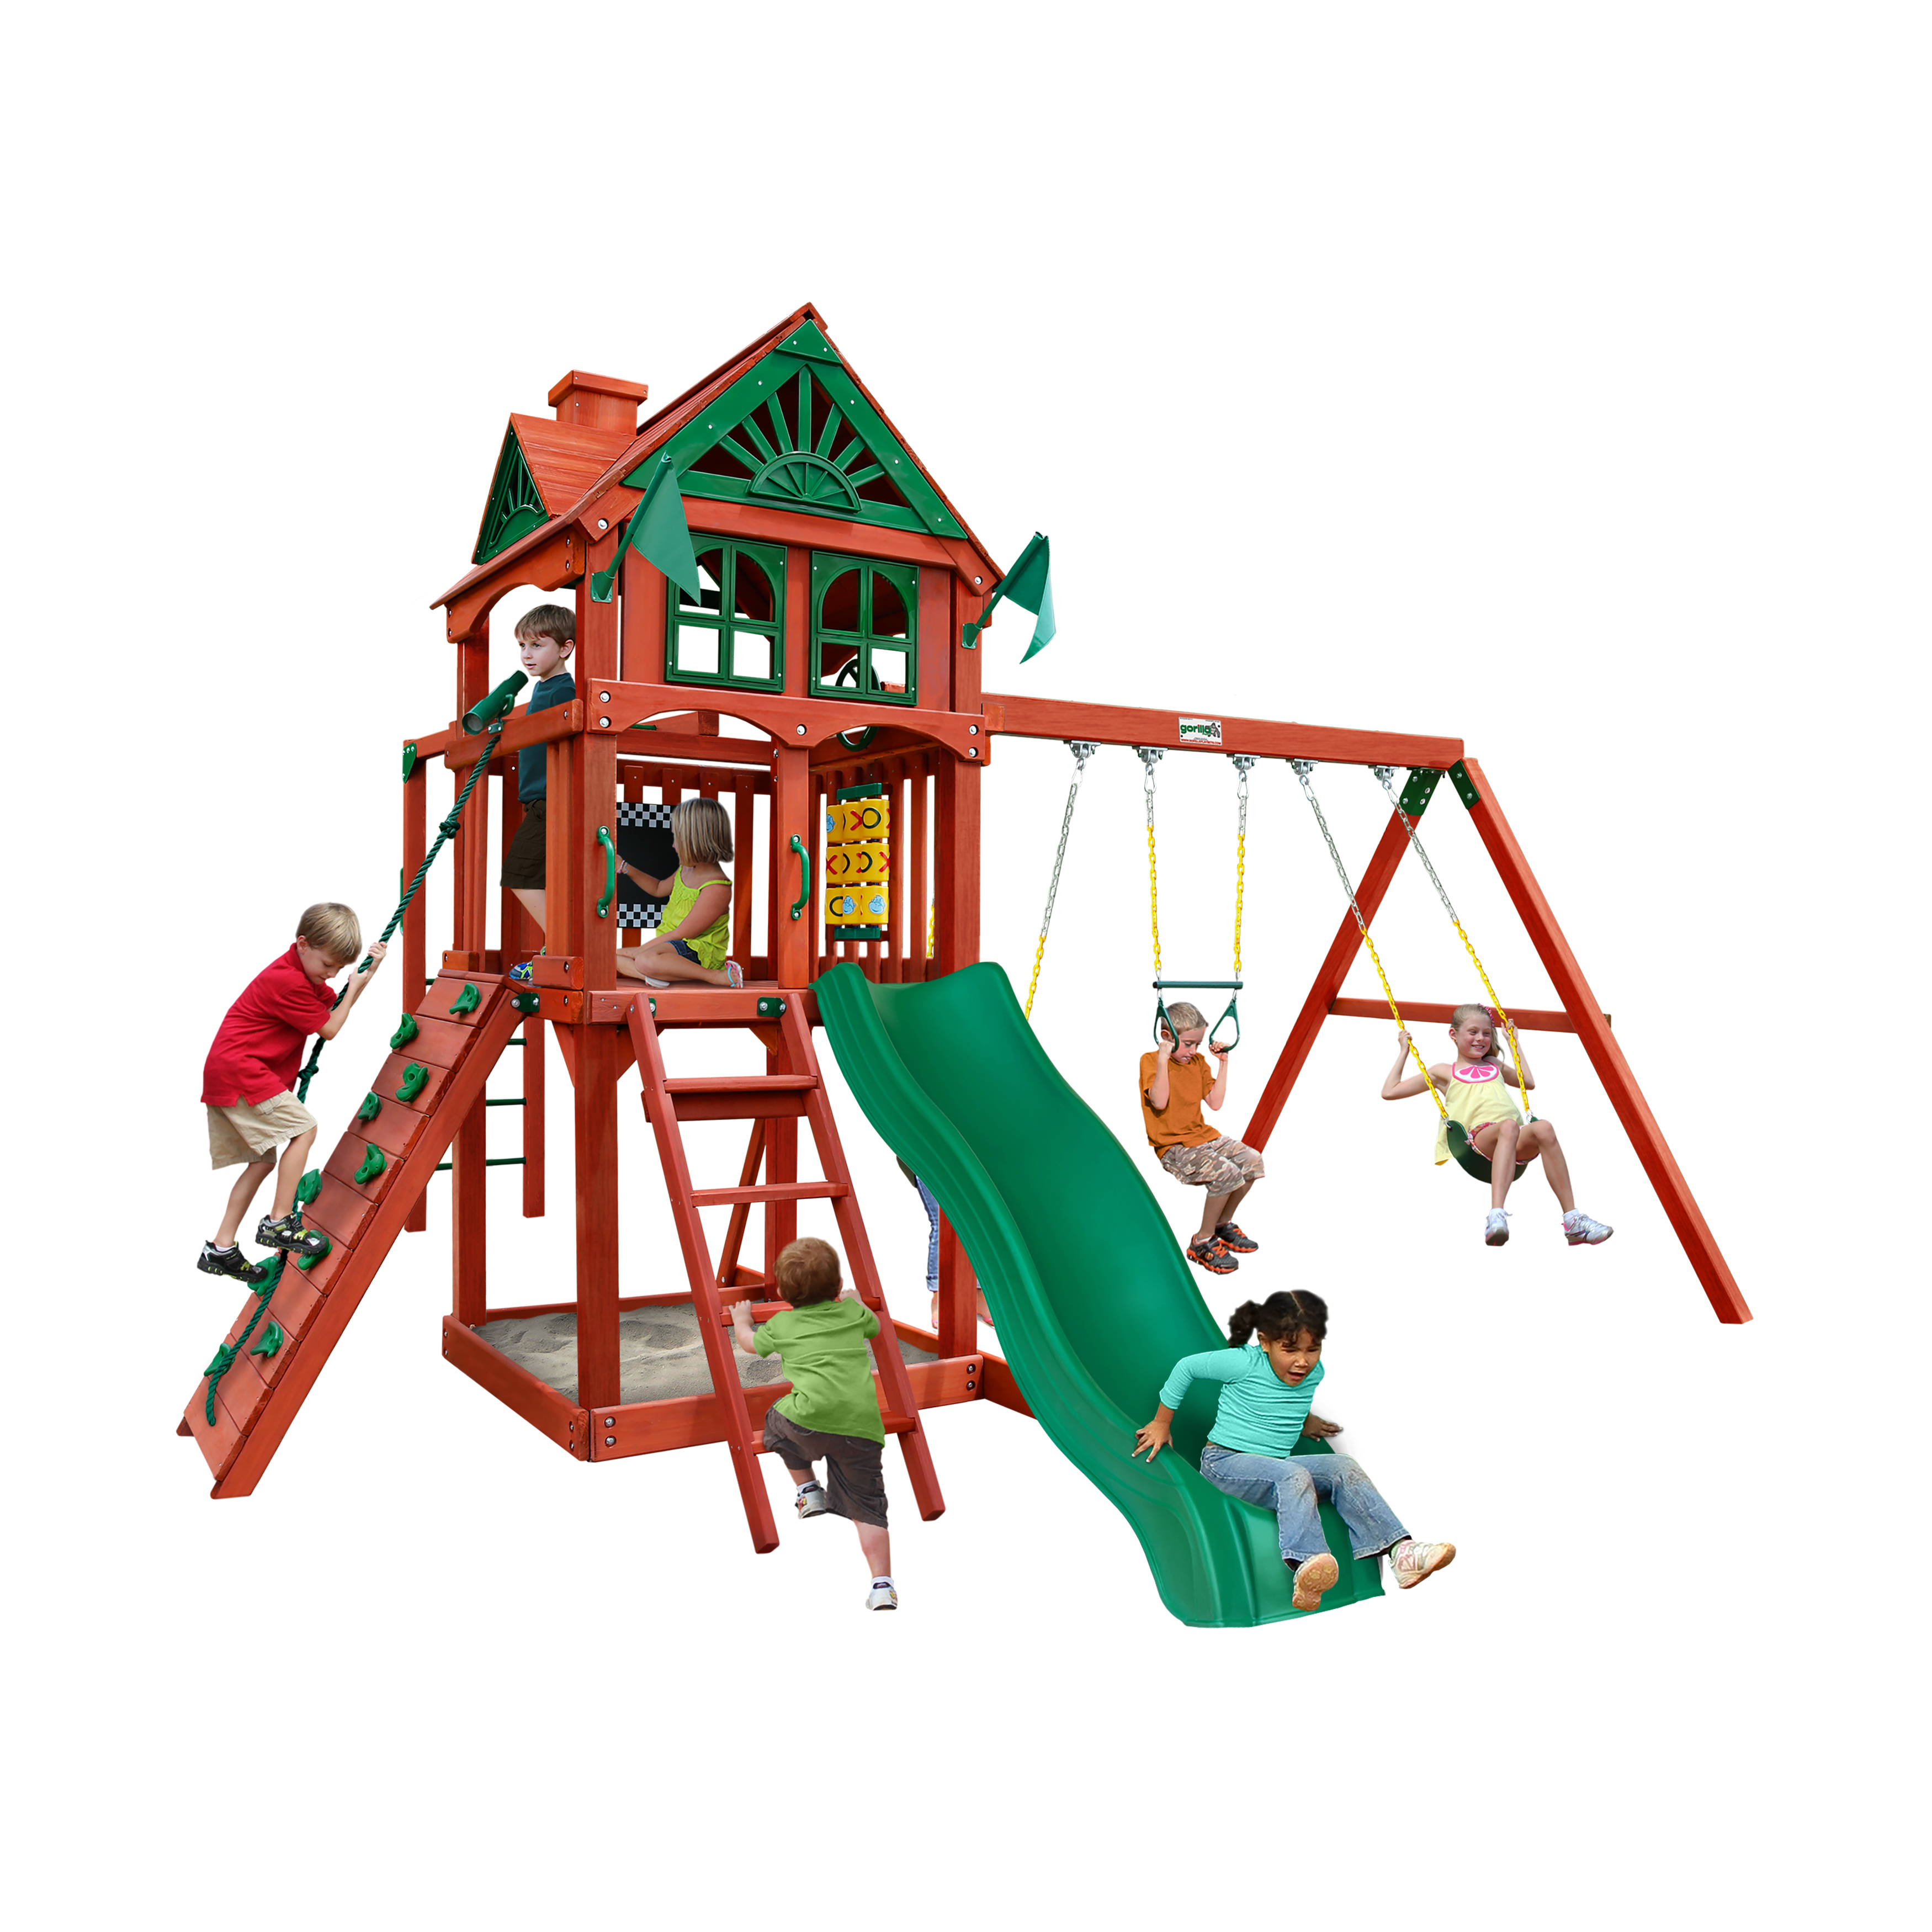 Gorilla Playsets Five Star Ii Wooden Swing Set With Monkey Bars